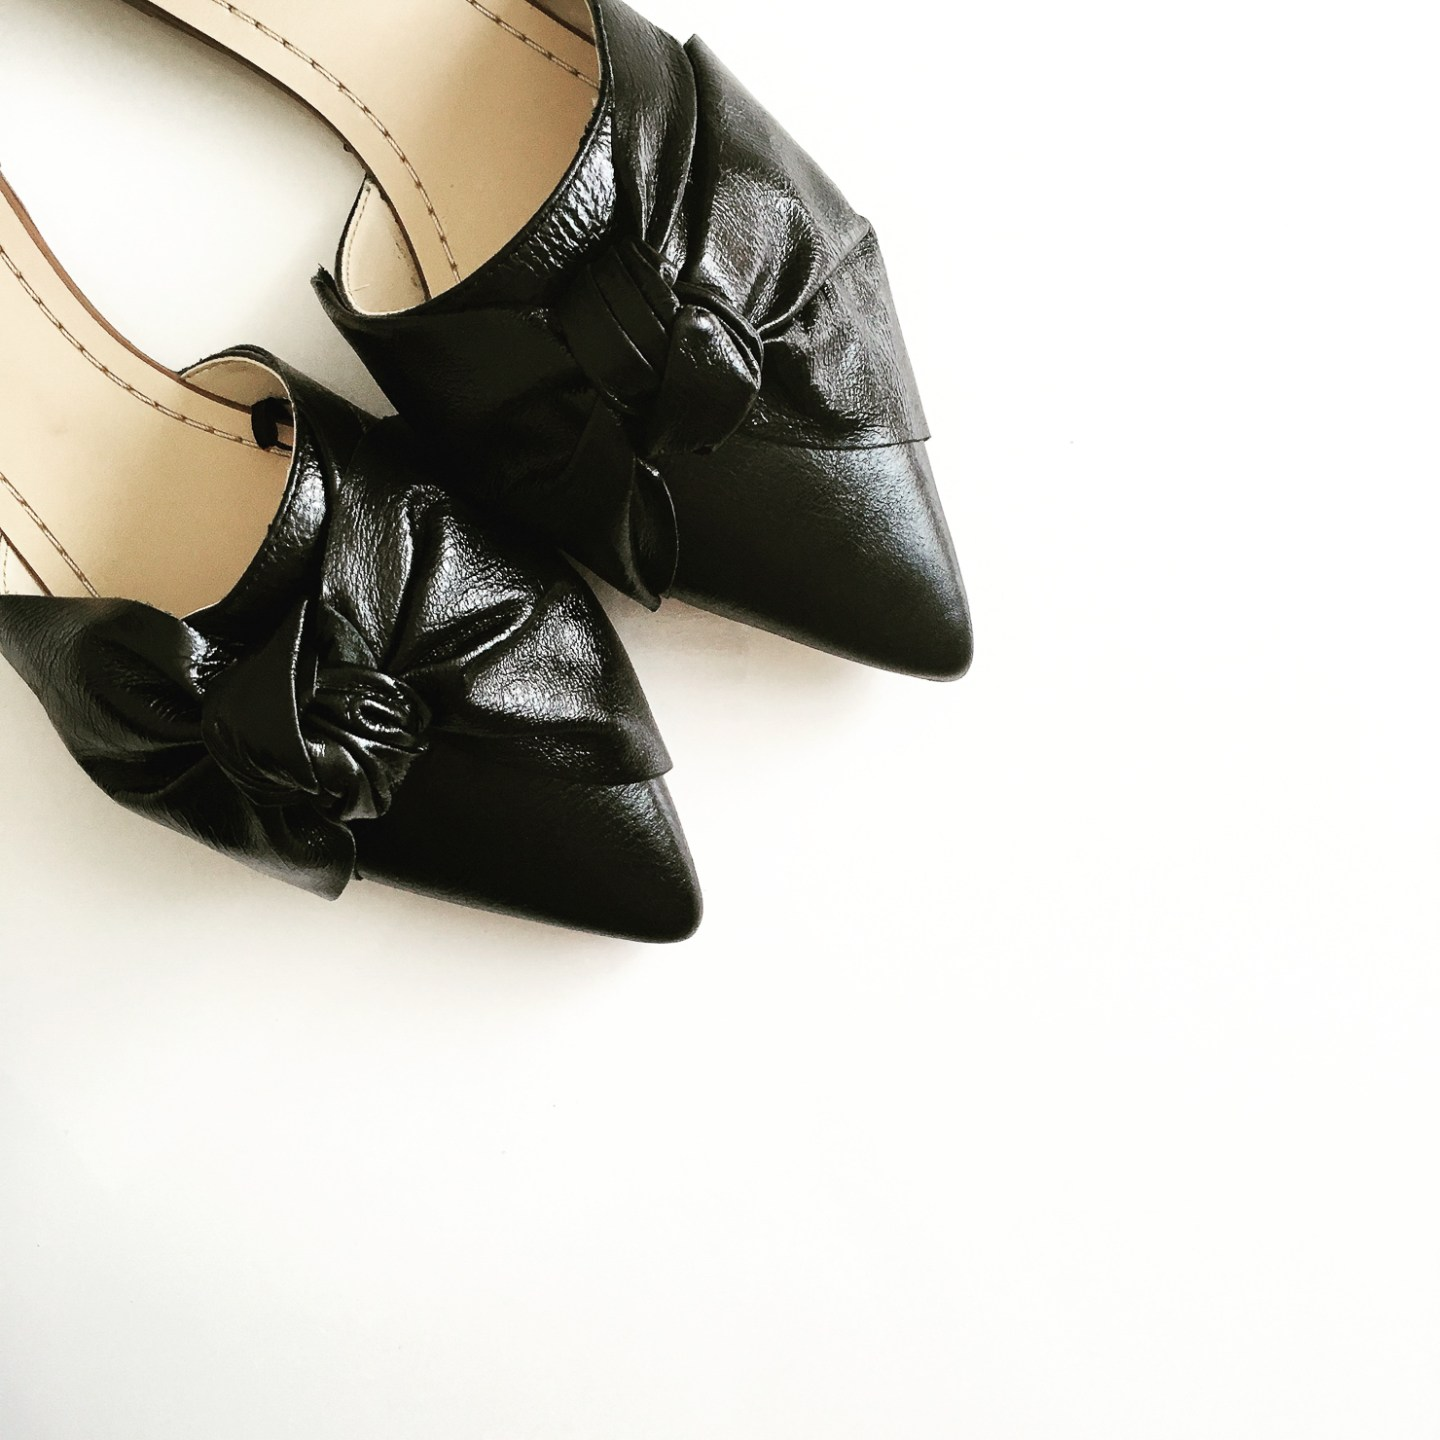 zara-mules-with-bow-black-leather-slides-with-bow-wishes-and-reality-instagram